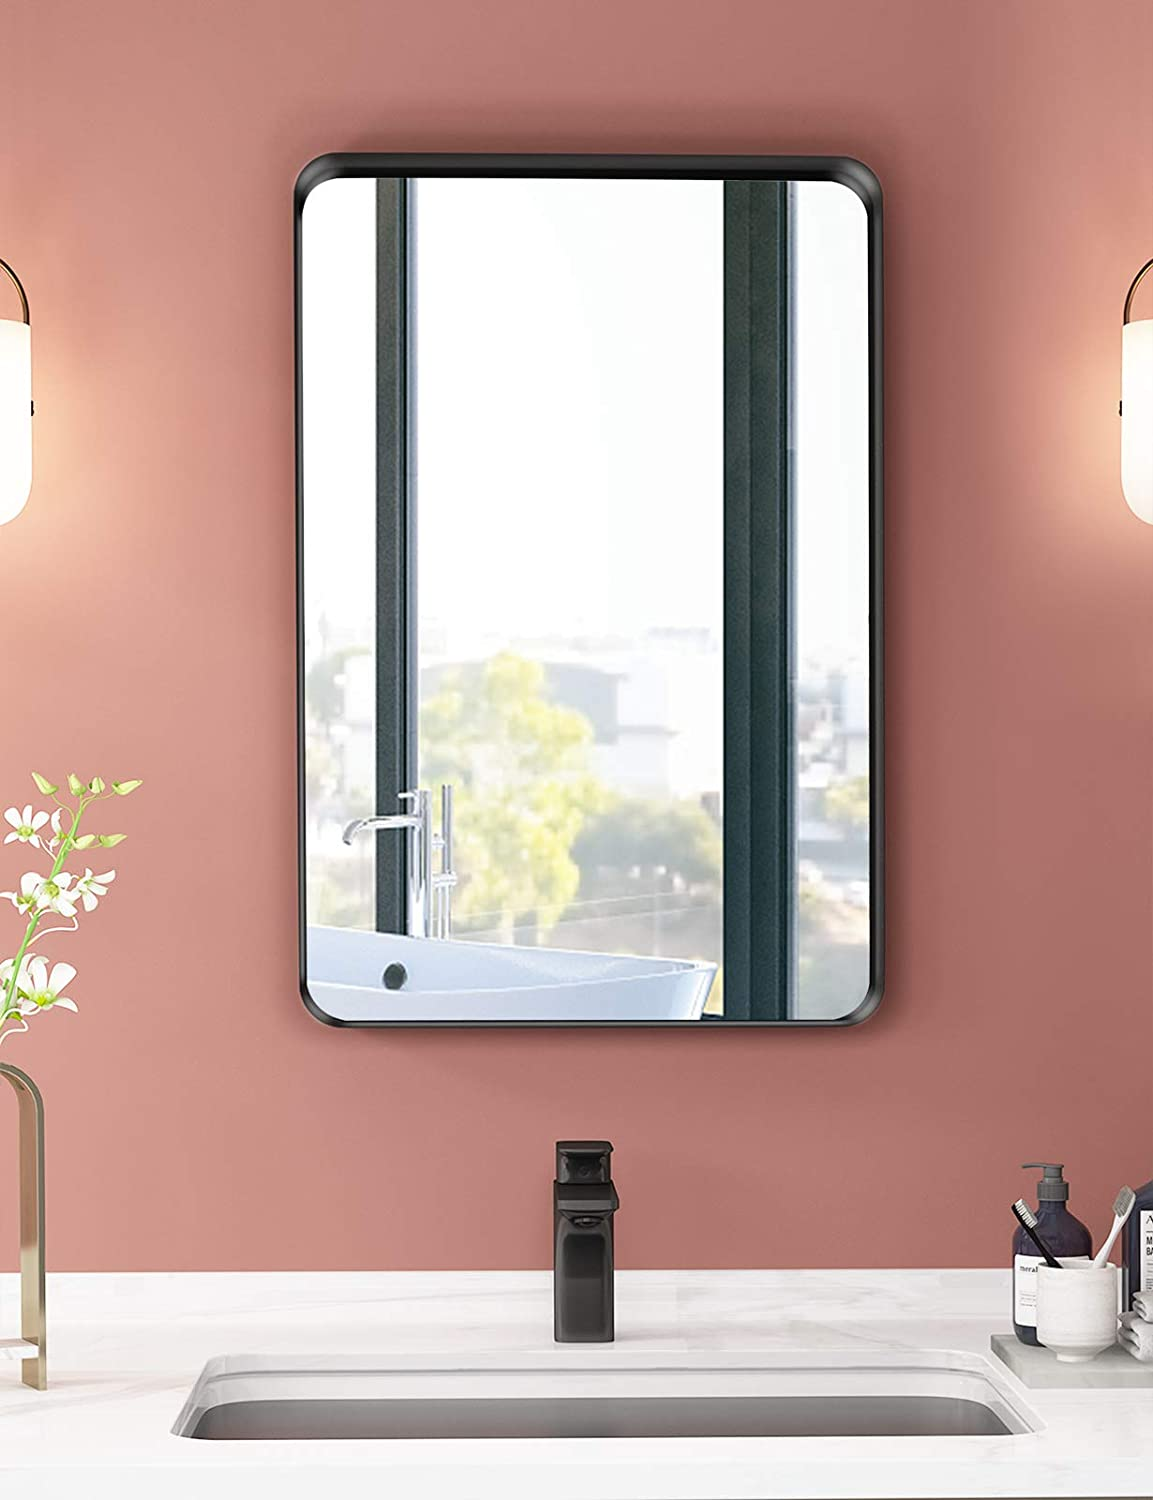 NXHOME Rectangle Metal Frame Wall Mirror for Bathroom 18 x 24 Inch Wall Mounted Vanity Mirror Rounded Corner Black Frame Decorative Mirrors for Living Room Bedroom: Furniture & Decor